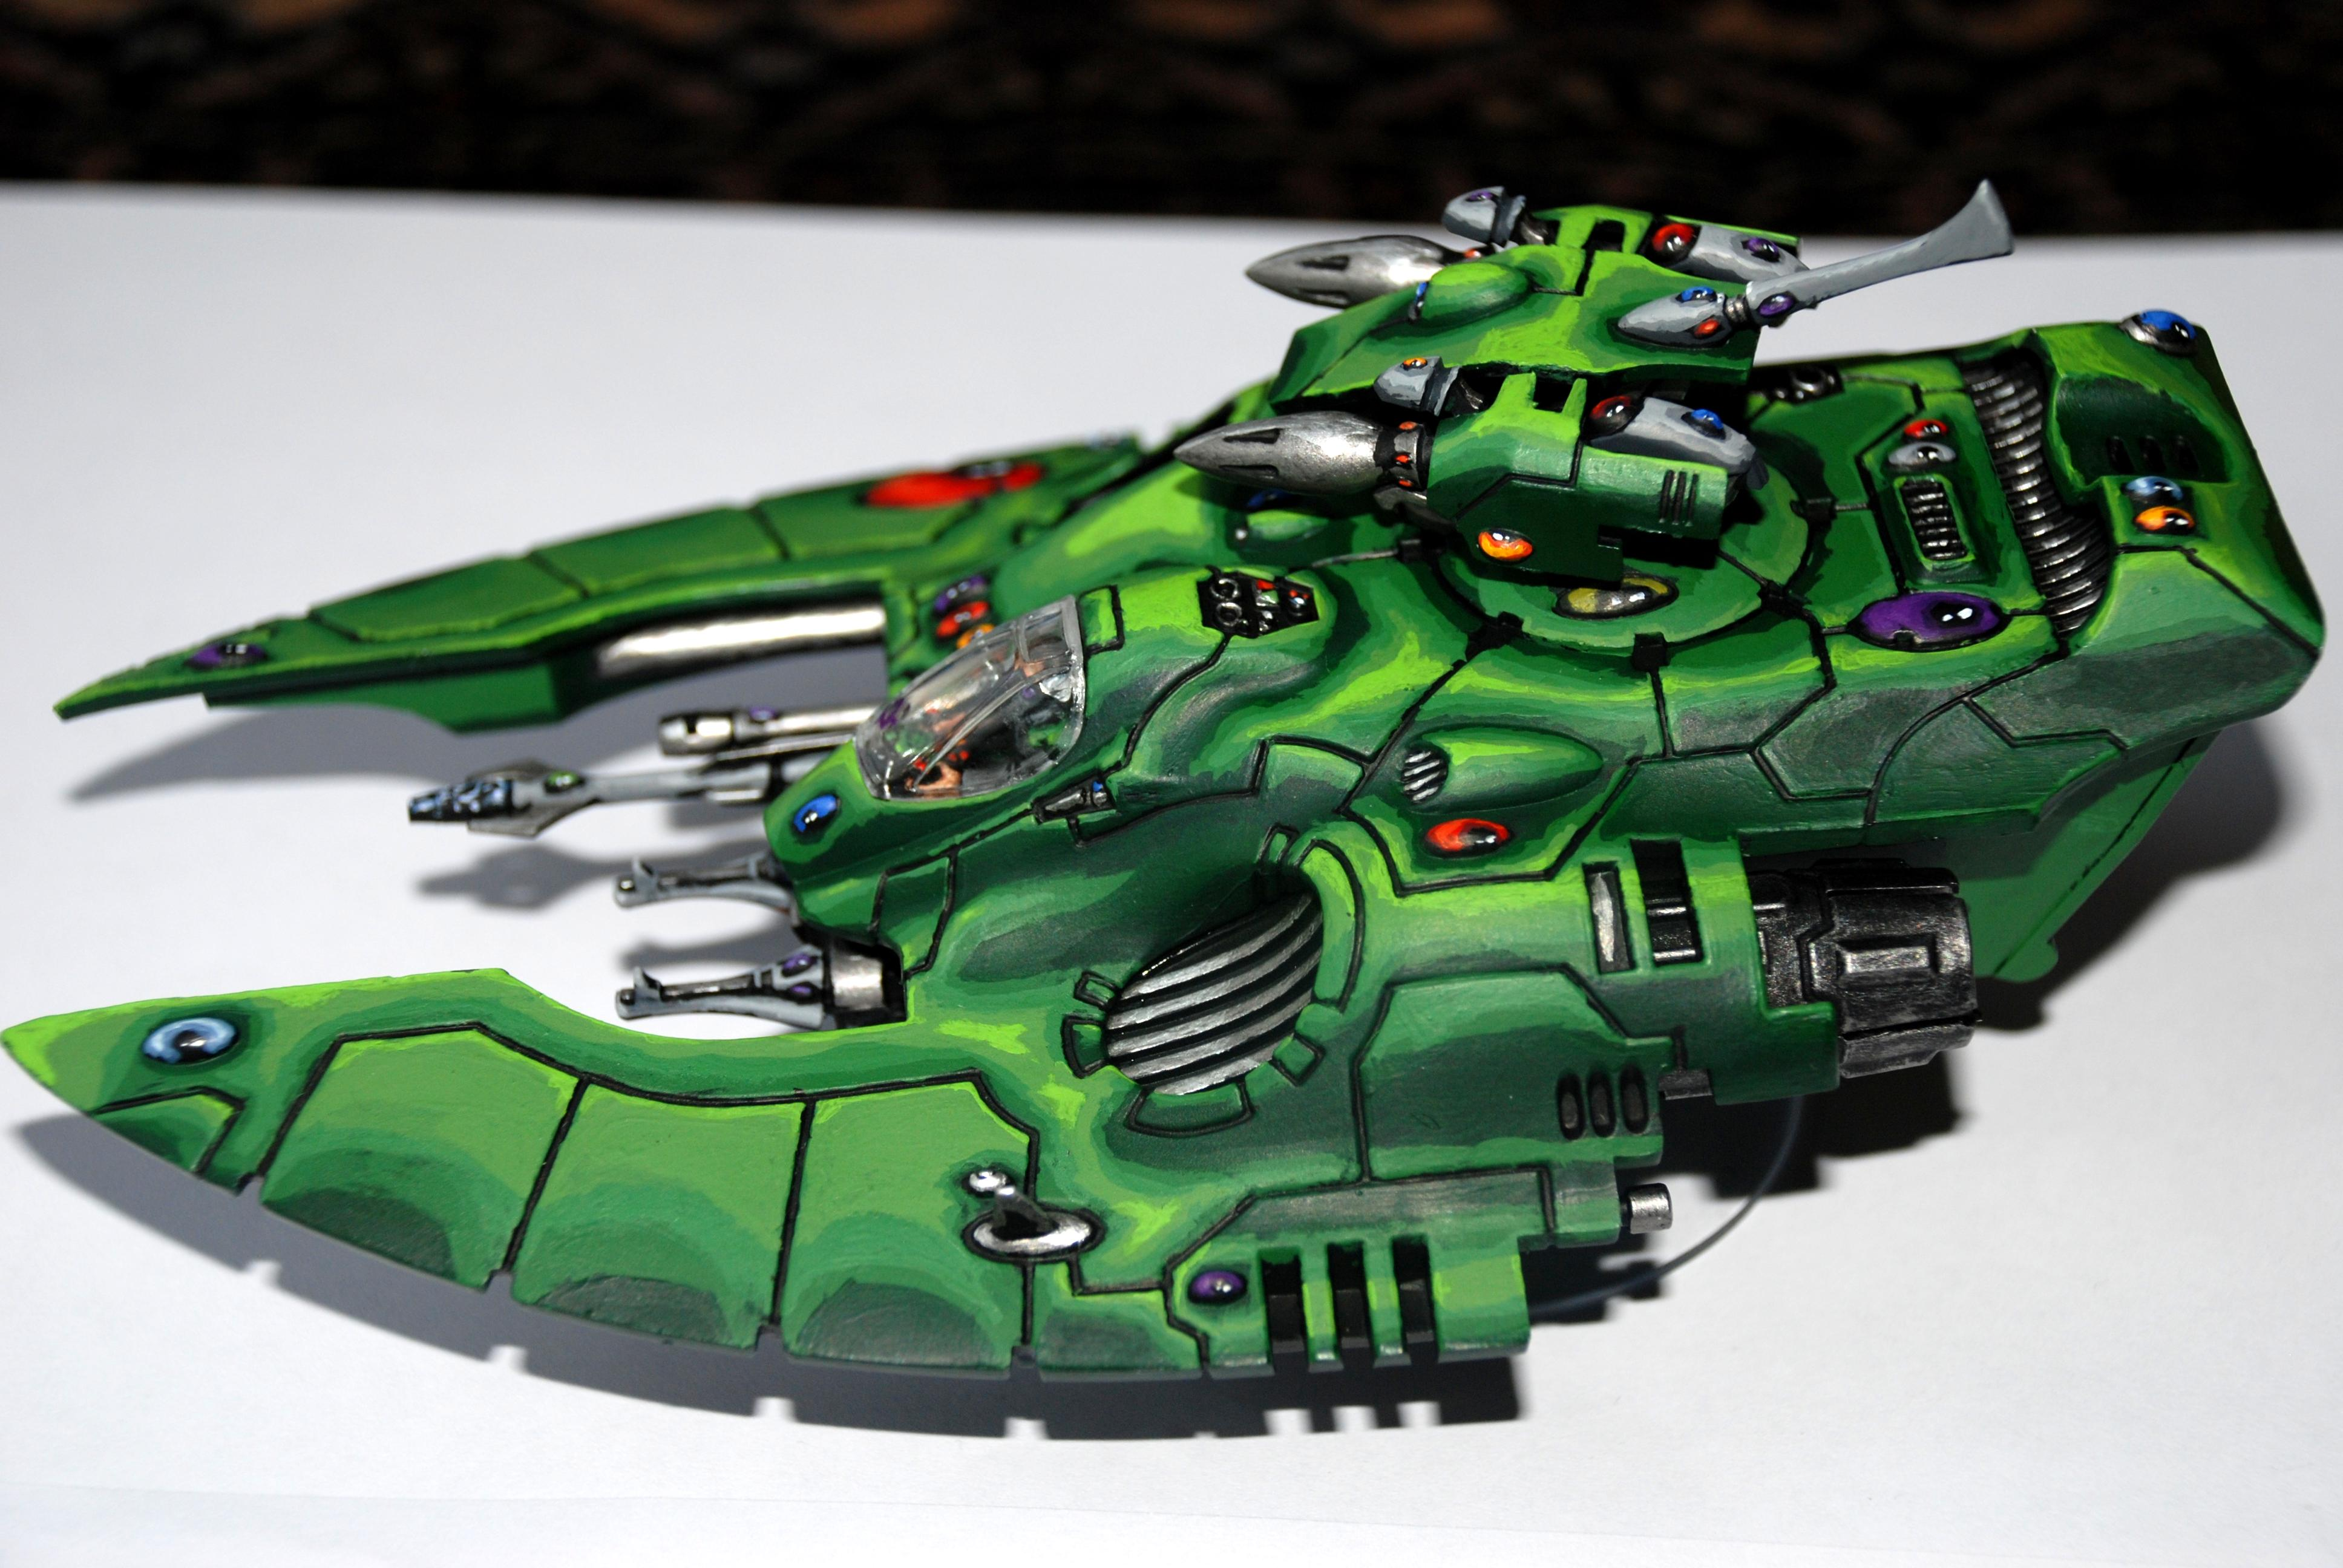 Blending, Eldar, Green, Painted, Transport, Warhammer 40,000, Wave Serpent